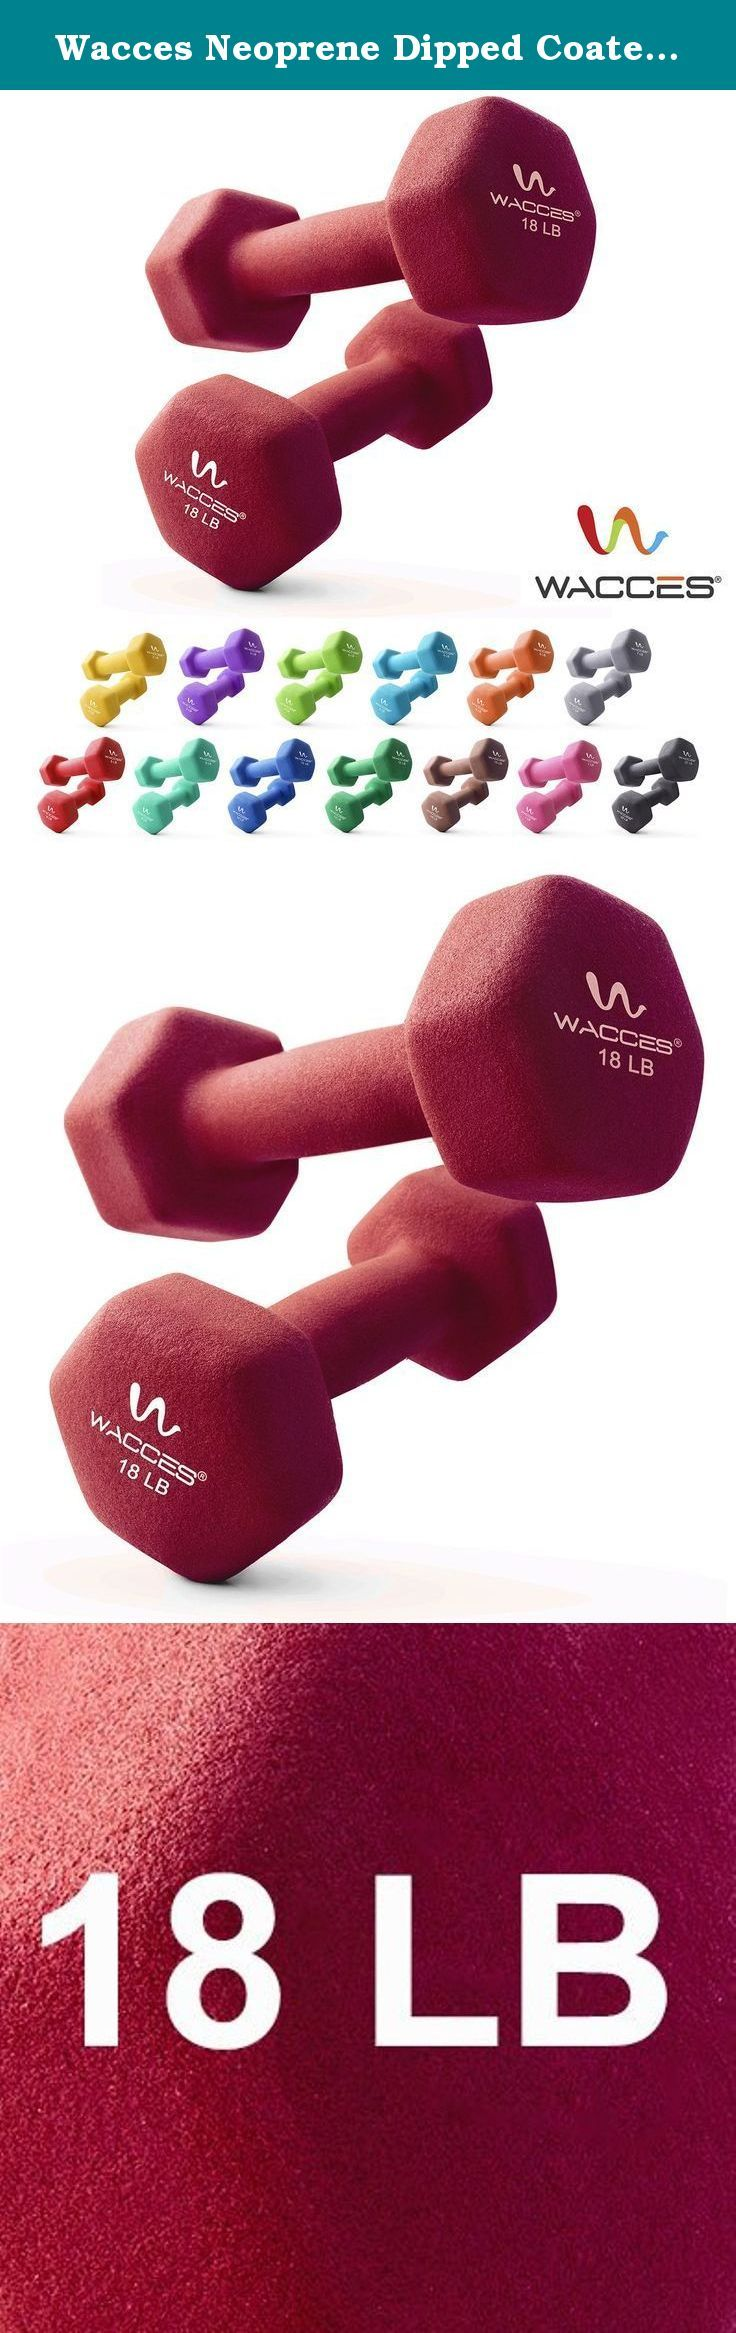 Wacces Neoprene Dipped Coated Set of 2 Dumbbells Hand Weights Sets Non Slip Grip 2 x 18 LB. Product Description The Wacces Neoprene Dumbbells offer a full set of weights for resistance training to help you sculpt muscles and tone them effectively.Whether you perform squats, do lunges or chest presses, using dumbbells also help prevent chronic back and joint pain and are effective for a full body workout. for beginners to working out, allowing you to work your way up gradually as you grow...